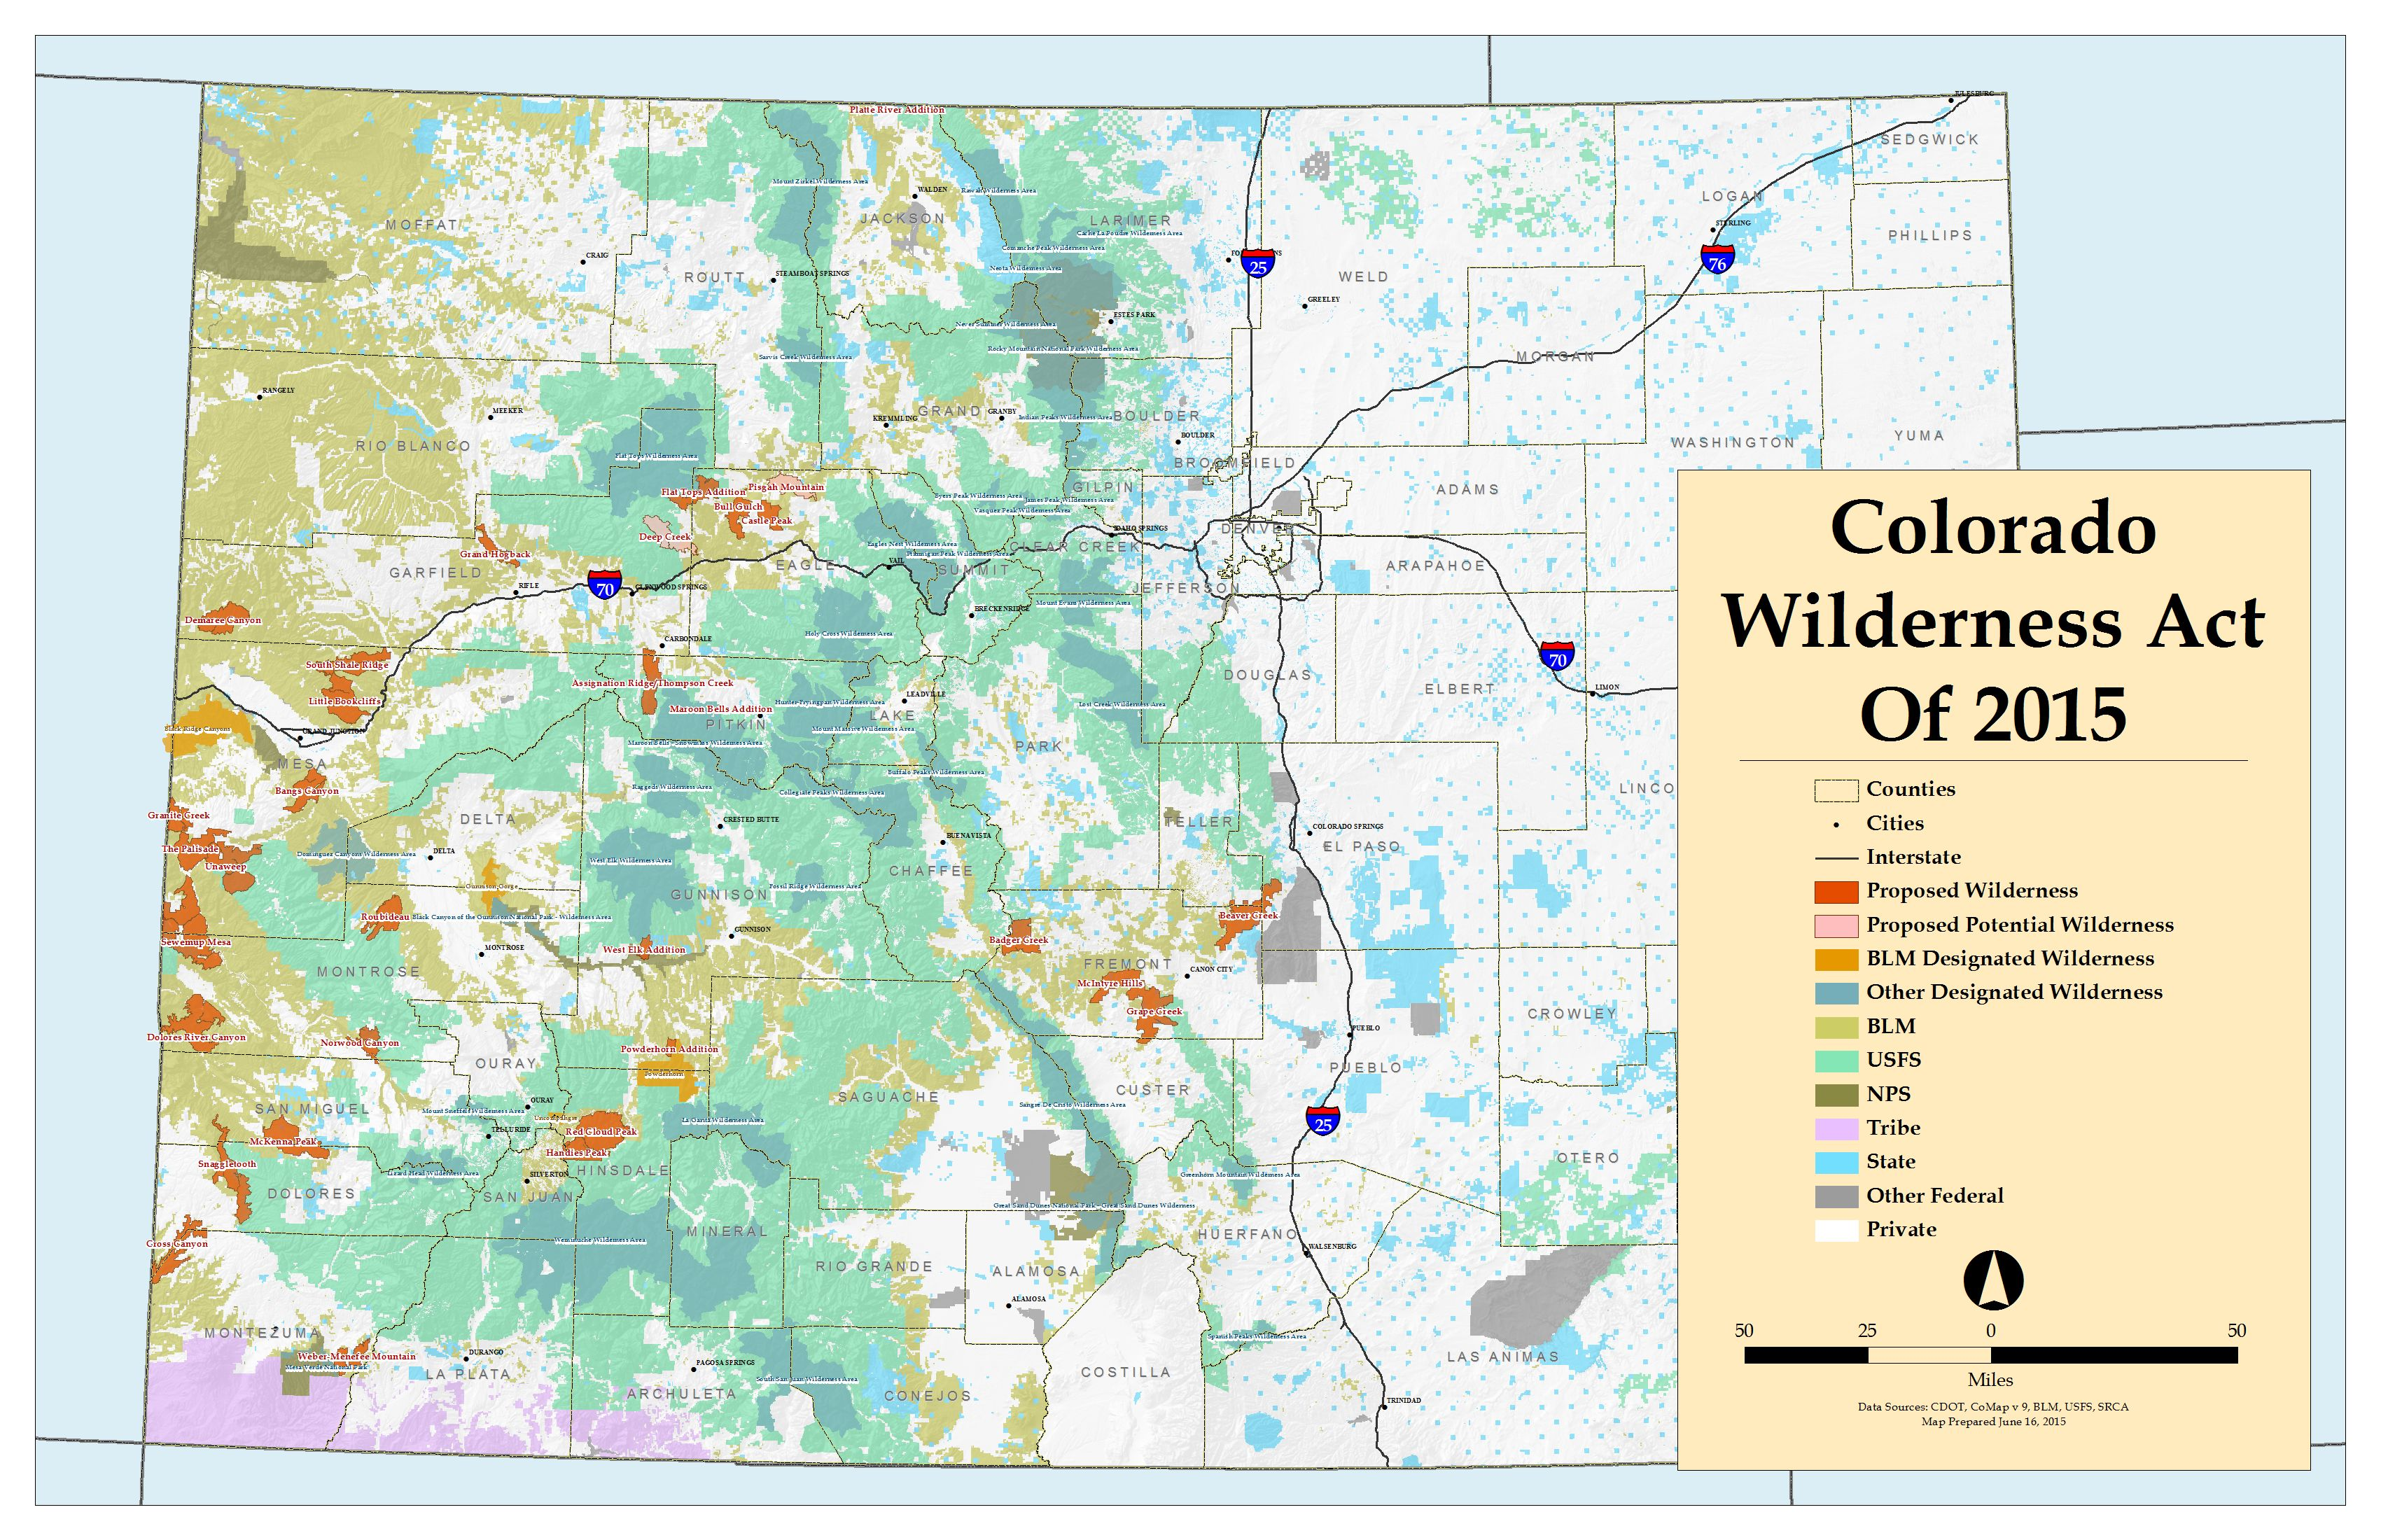 Colorado Wilderness Act of 2015 Map